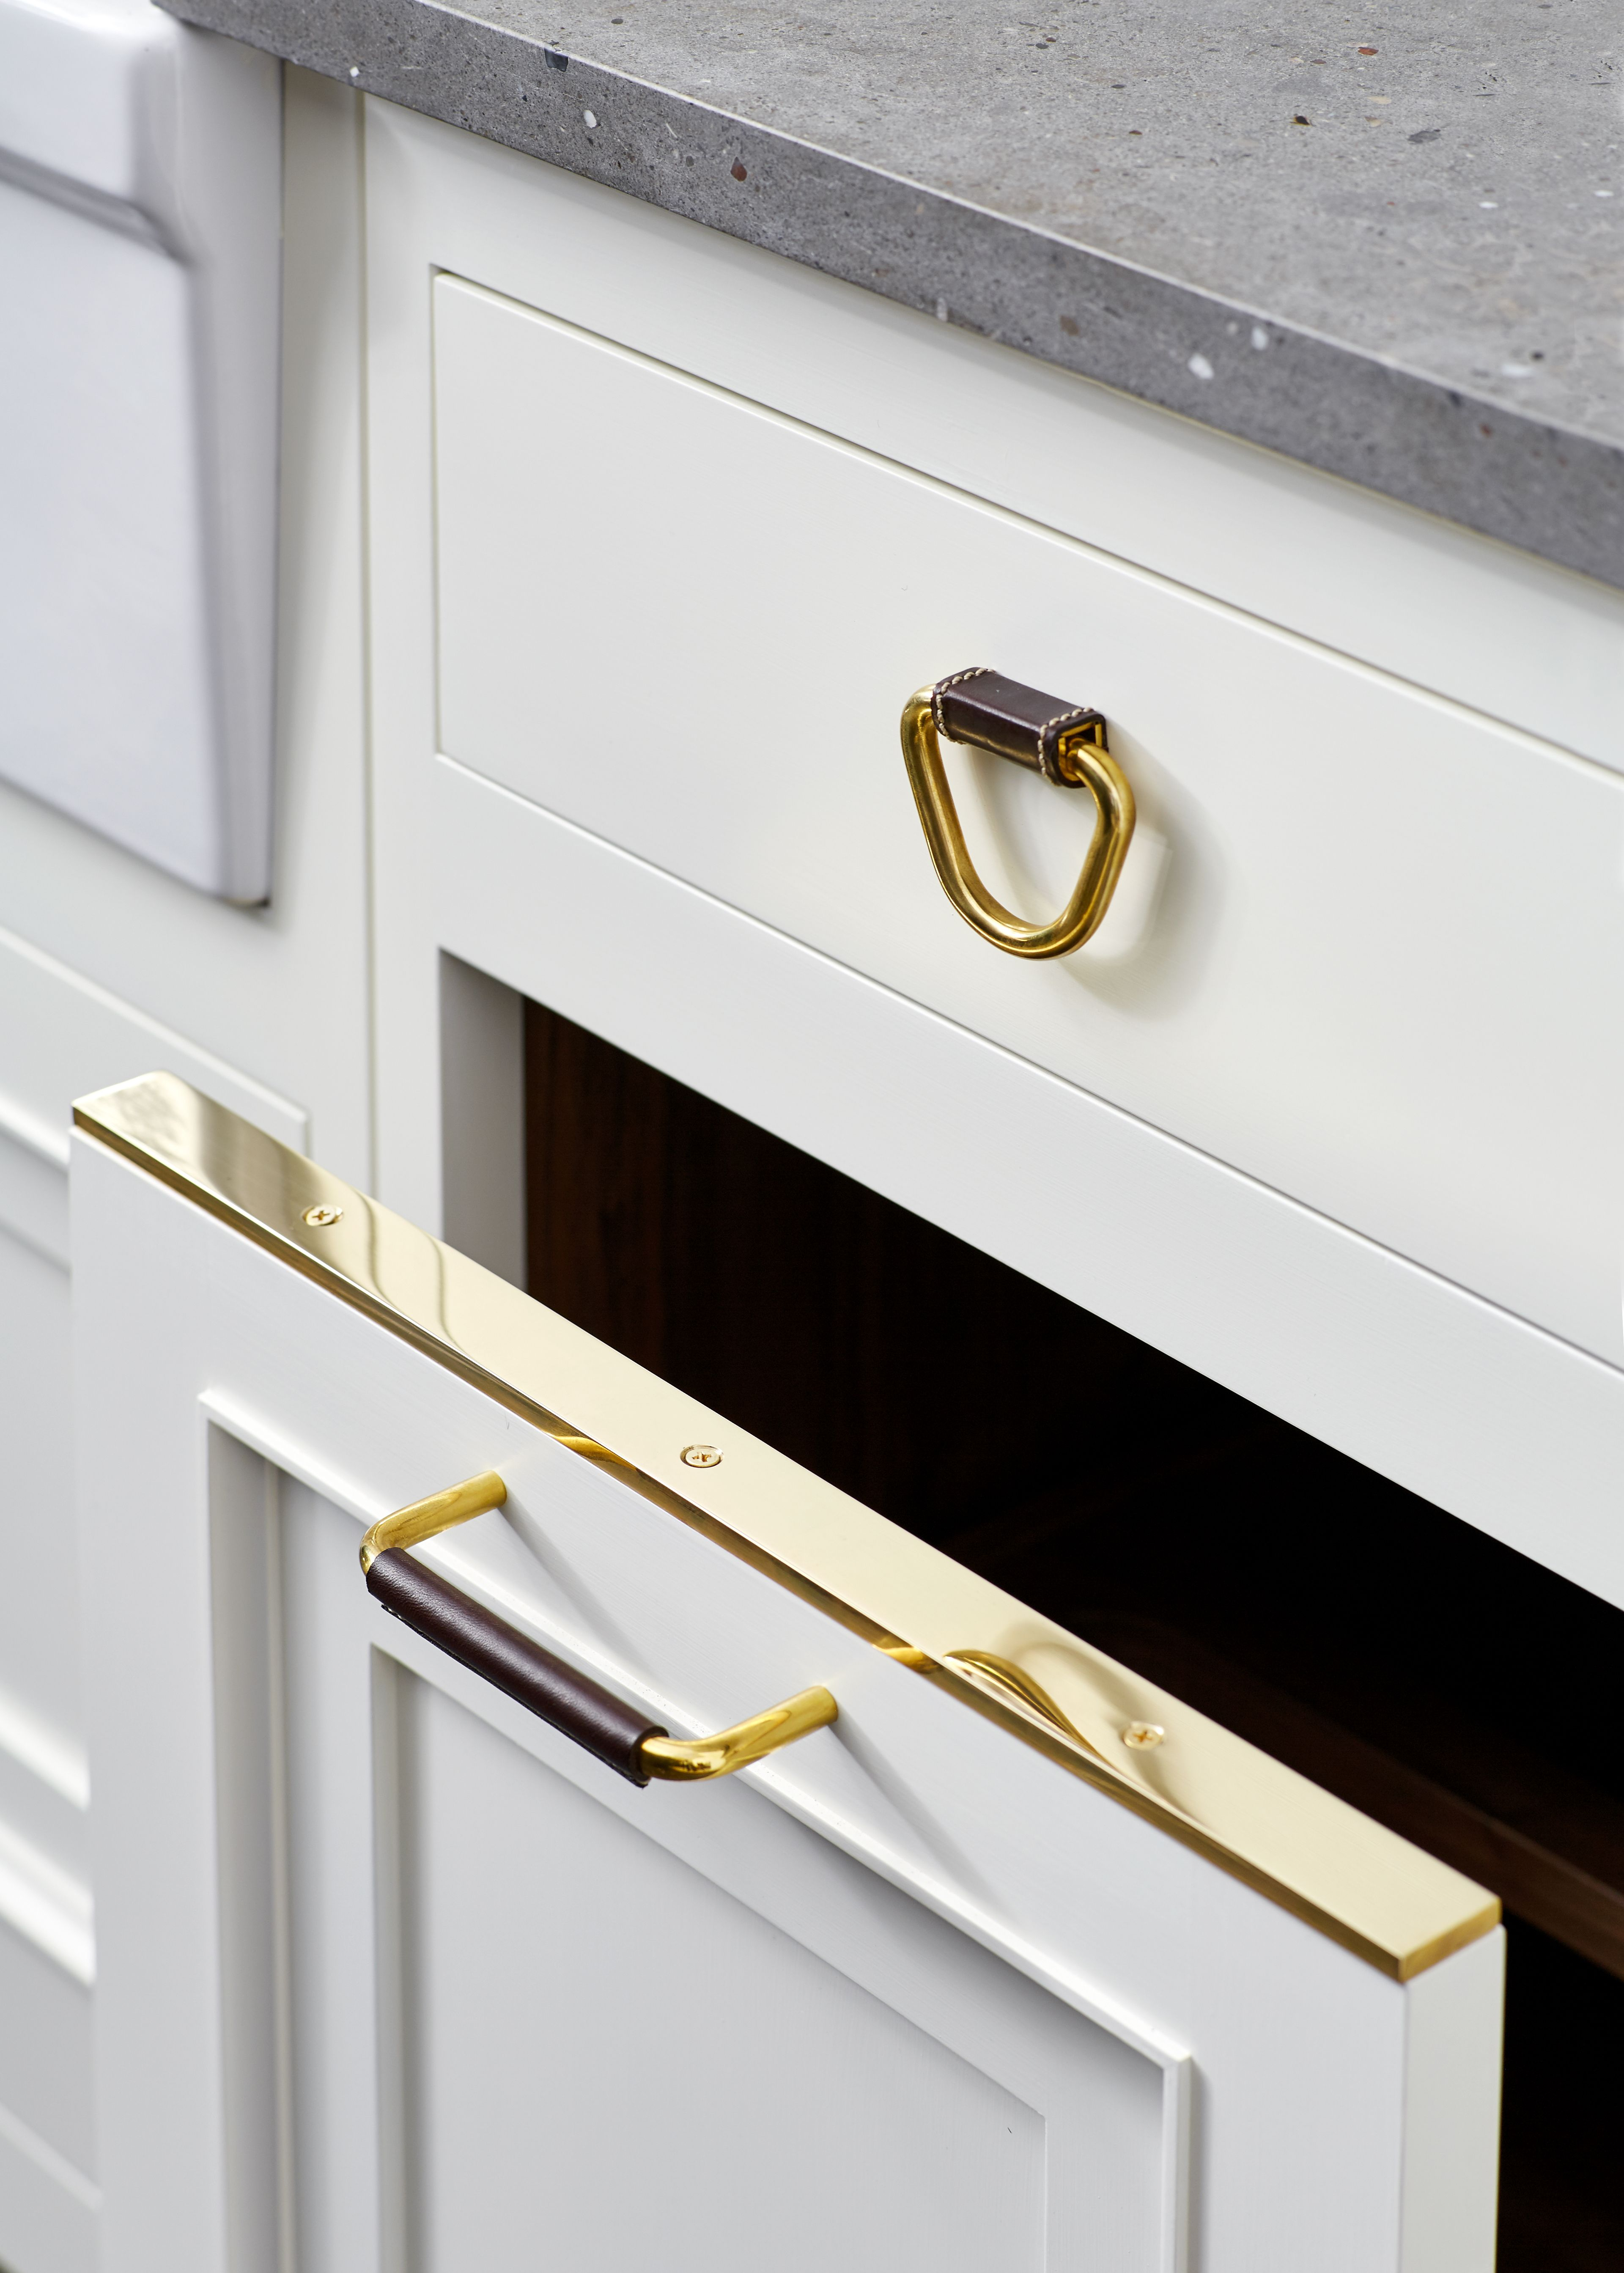 Fallbrook 1 3 4 Leather Pull Cabinetry Hardware Kitchen